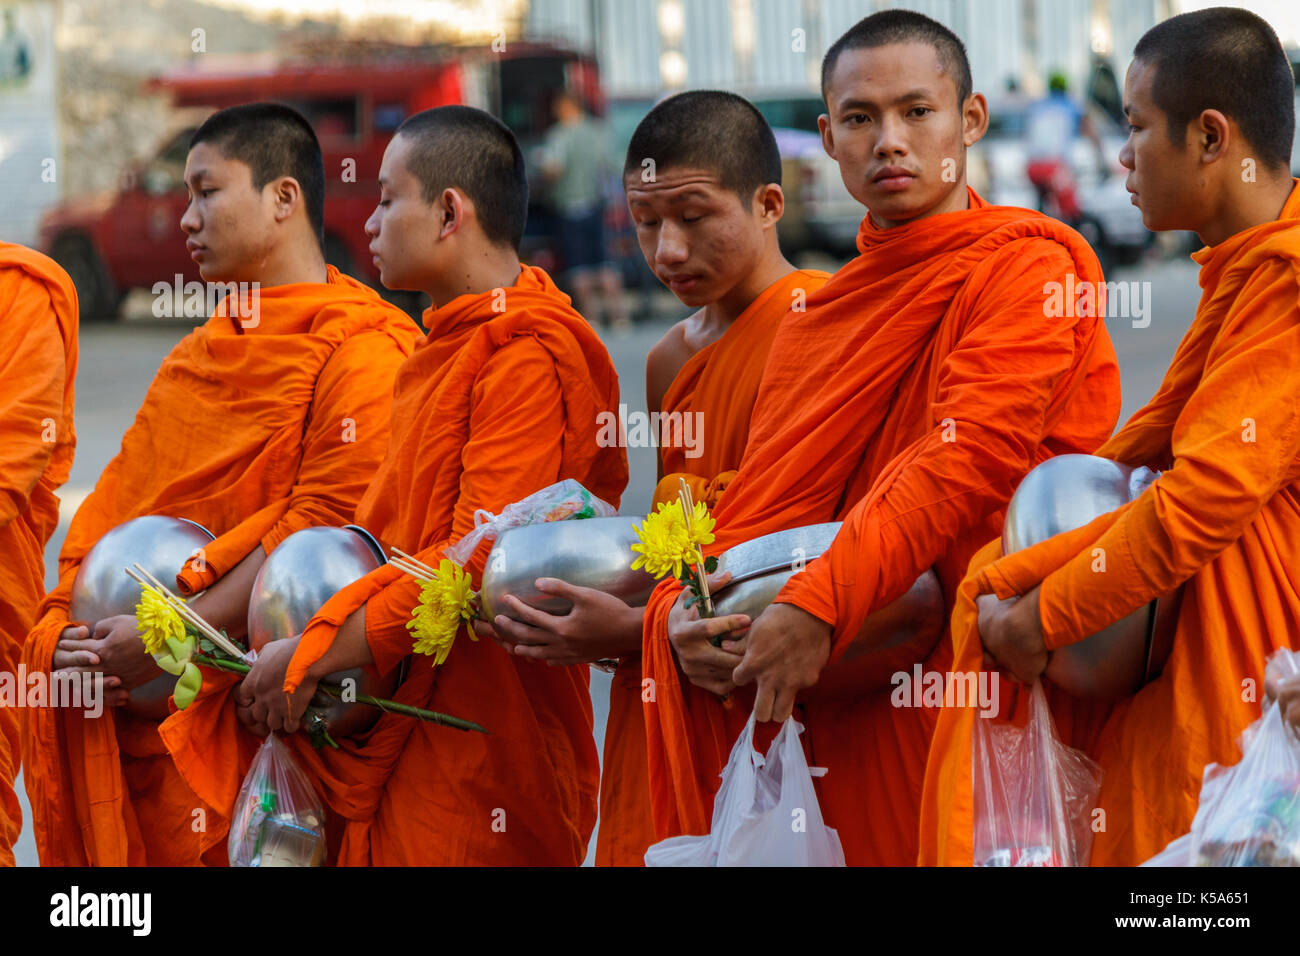 CHIANG MAI, THAILAND - 1/8/2016: Young monks collect donations in Chiang Mai, Thailand. - Stock Image